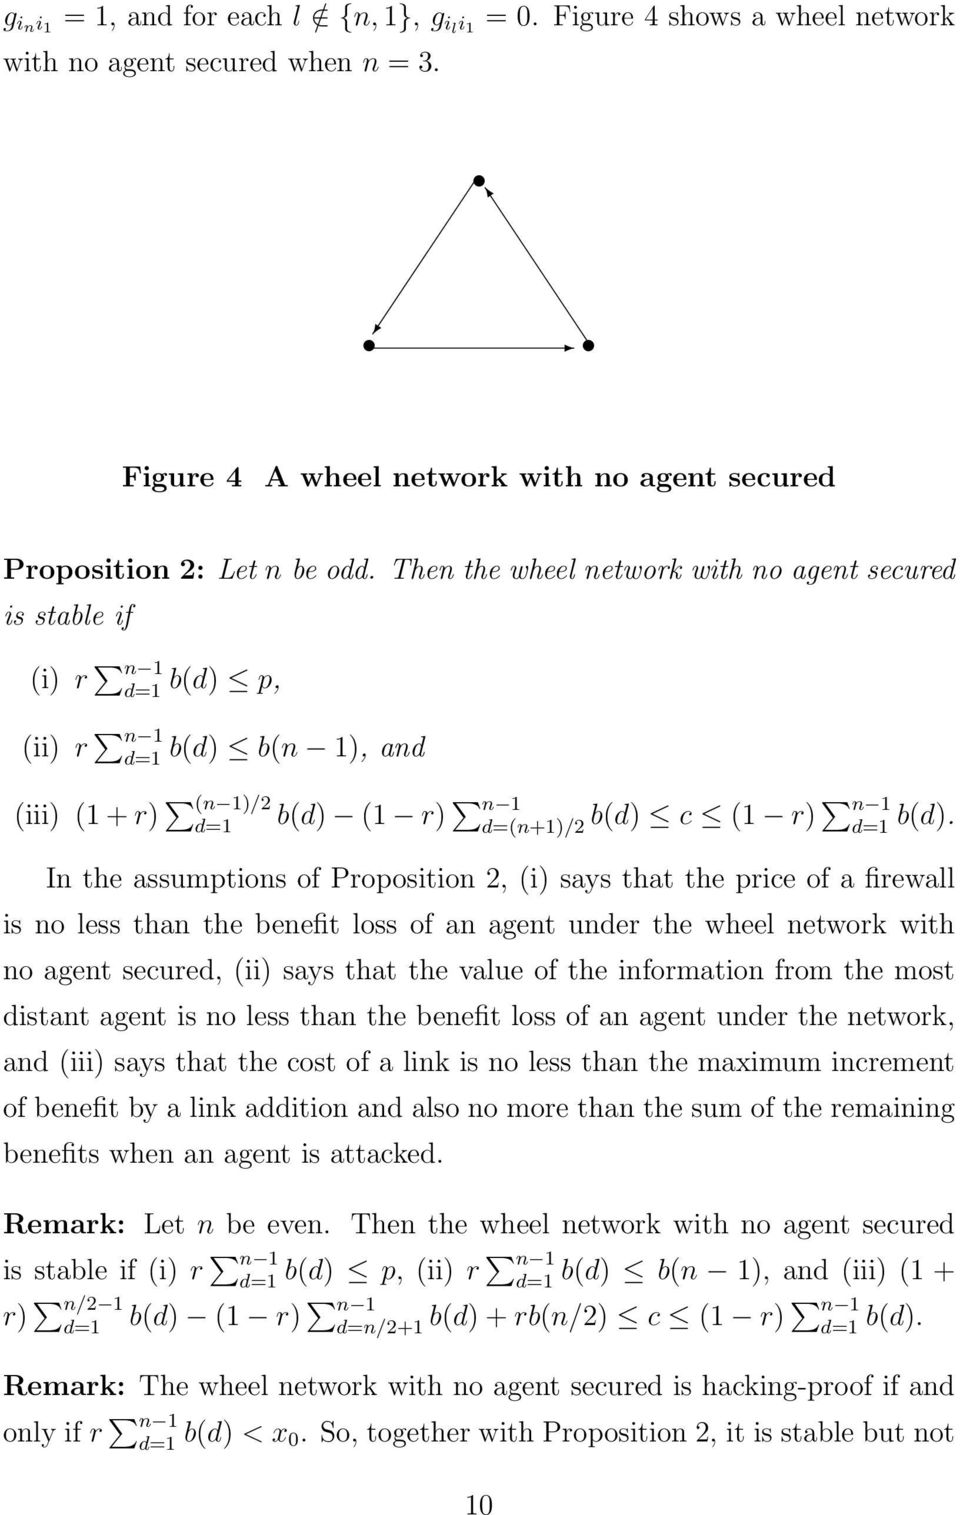 In the assumptions of Proposition 2, (i) says that the price of a firewall is no less than the benefit loss of an agent under the wheel network with no agent secured, (ii) says that the value of the